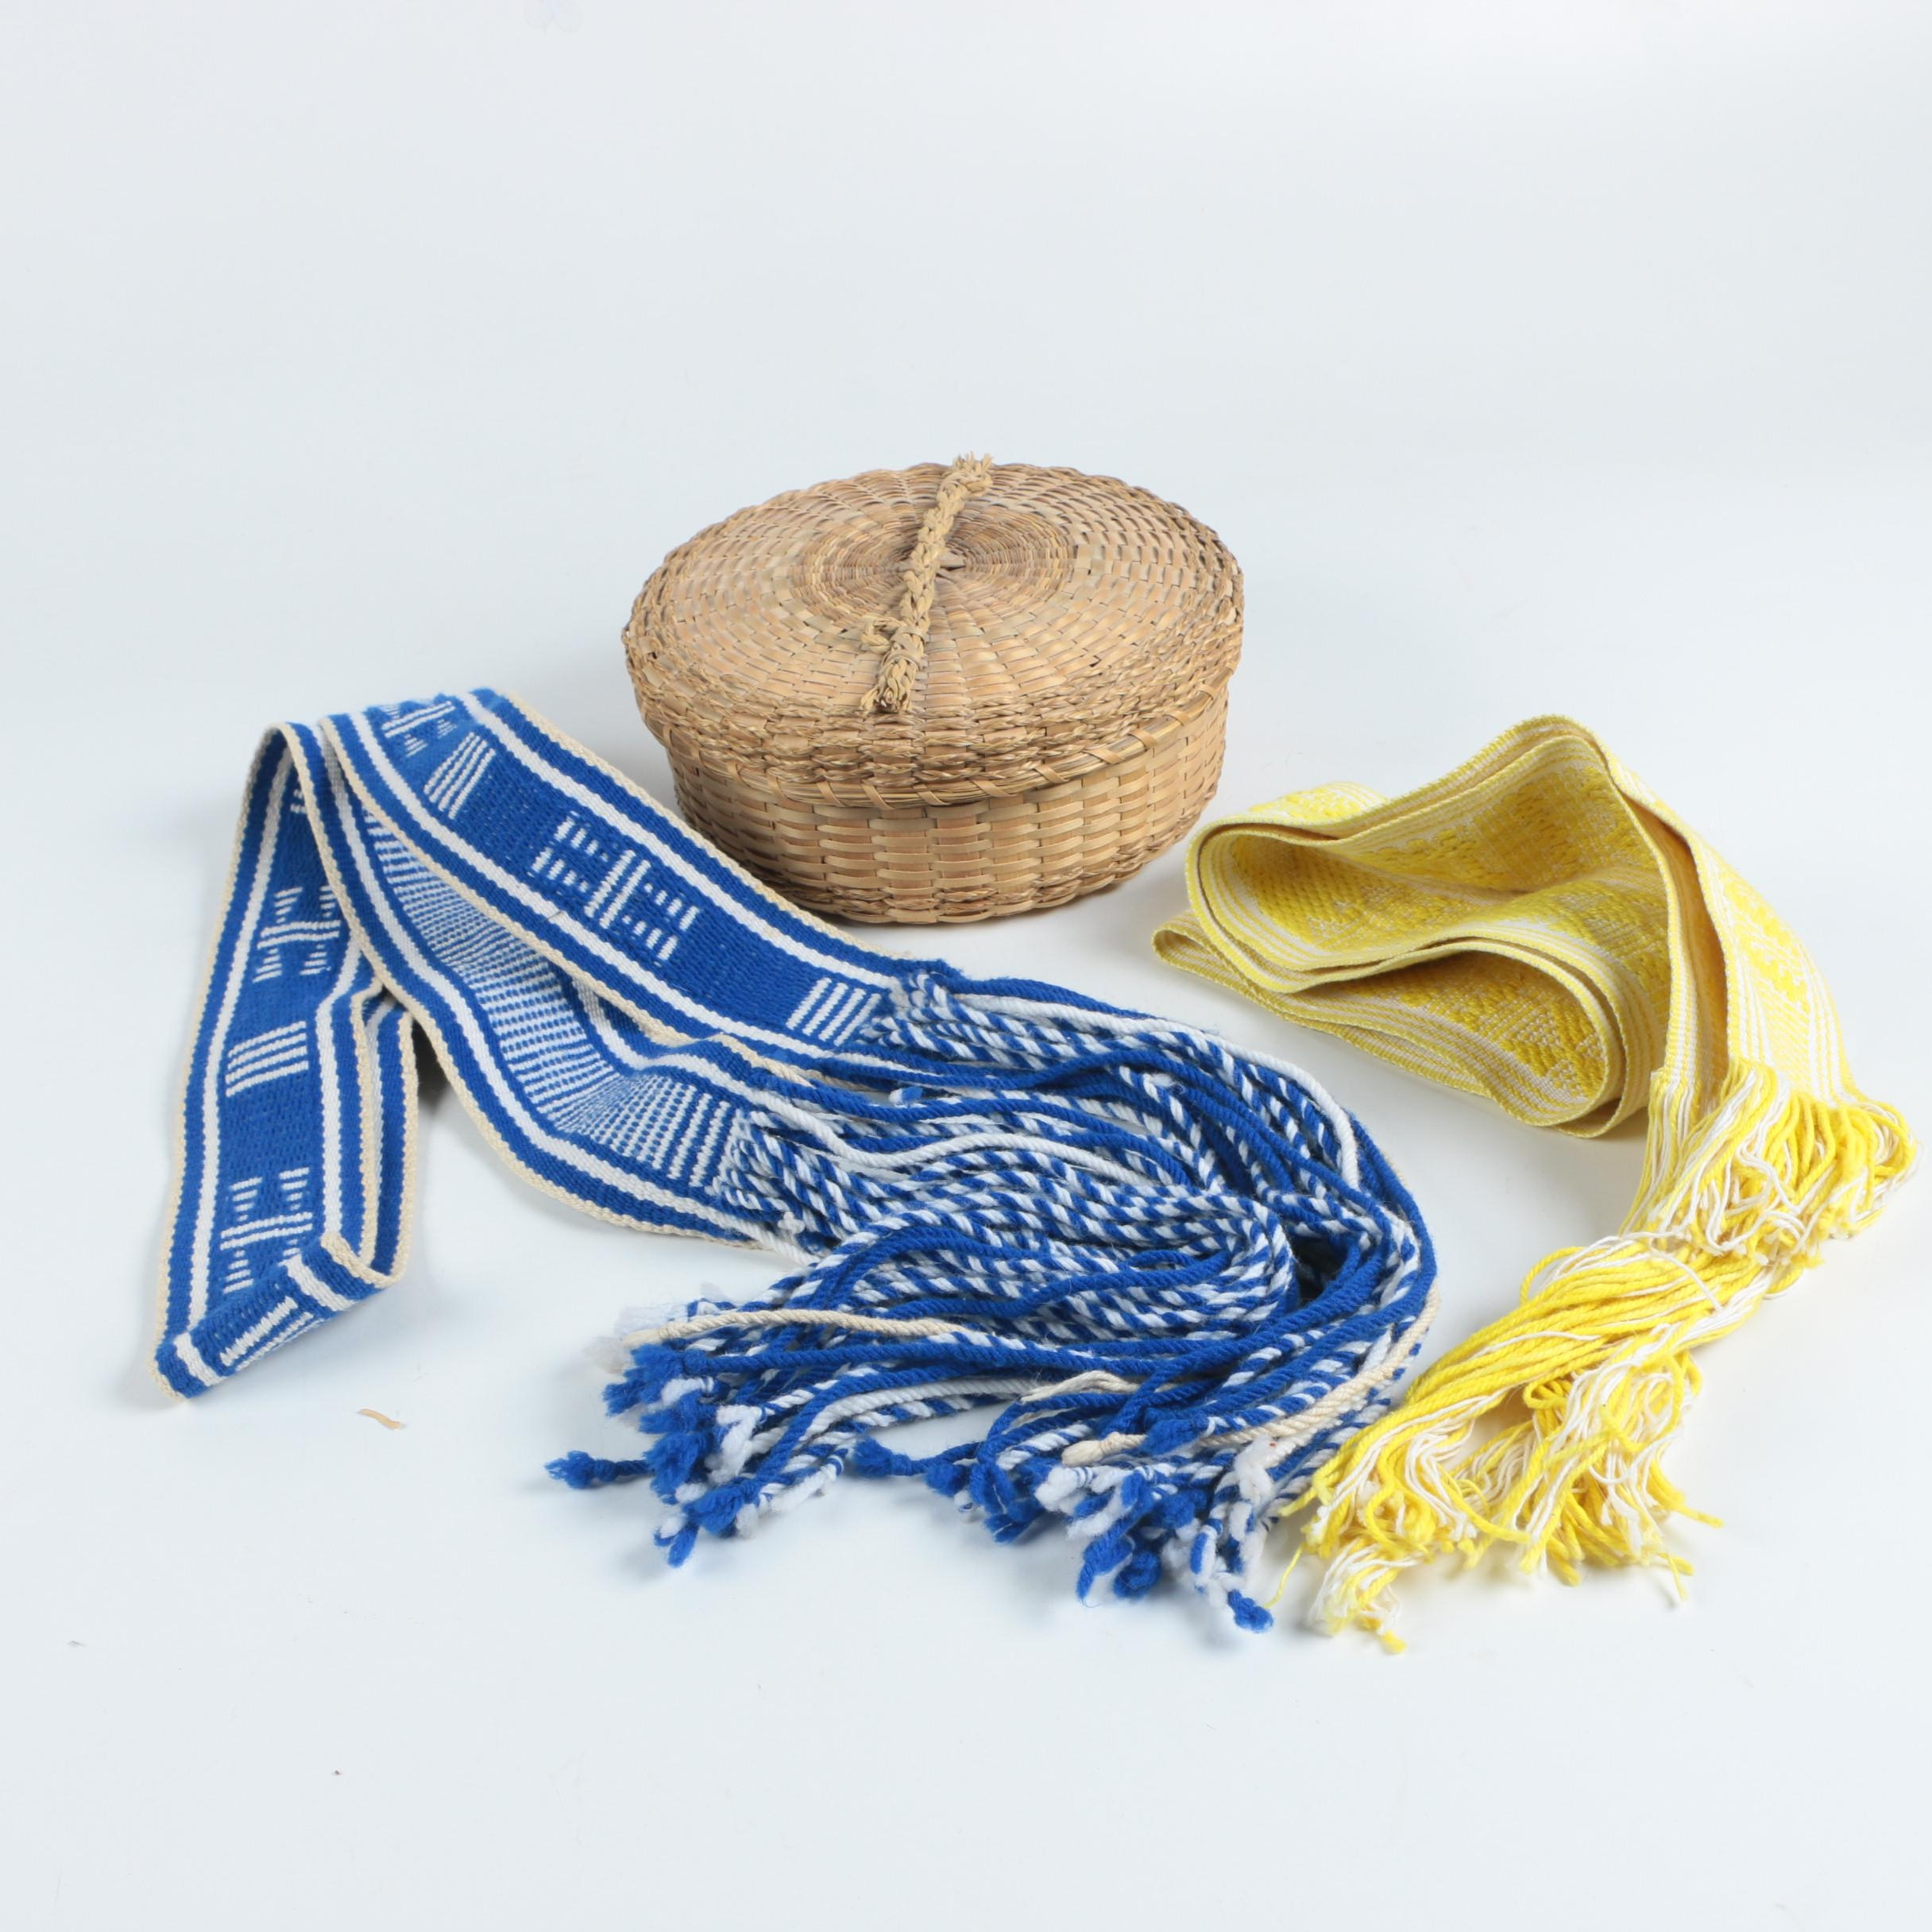 Native American Regalia Sashes and Woven Lidded Basket